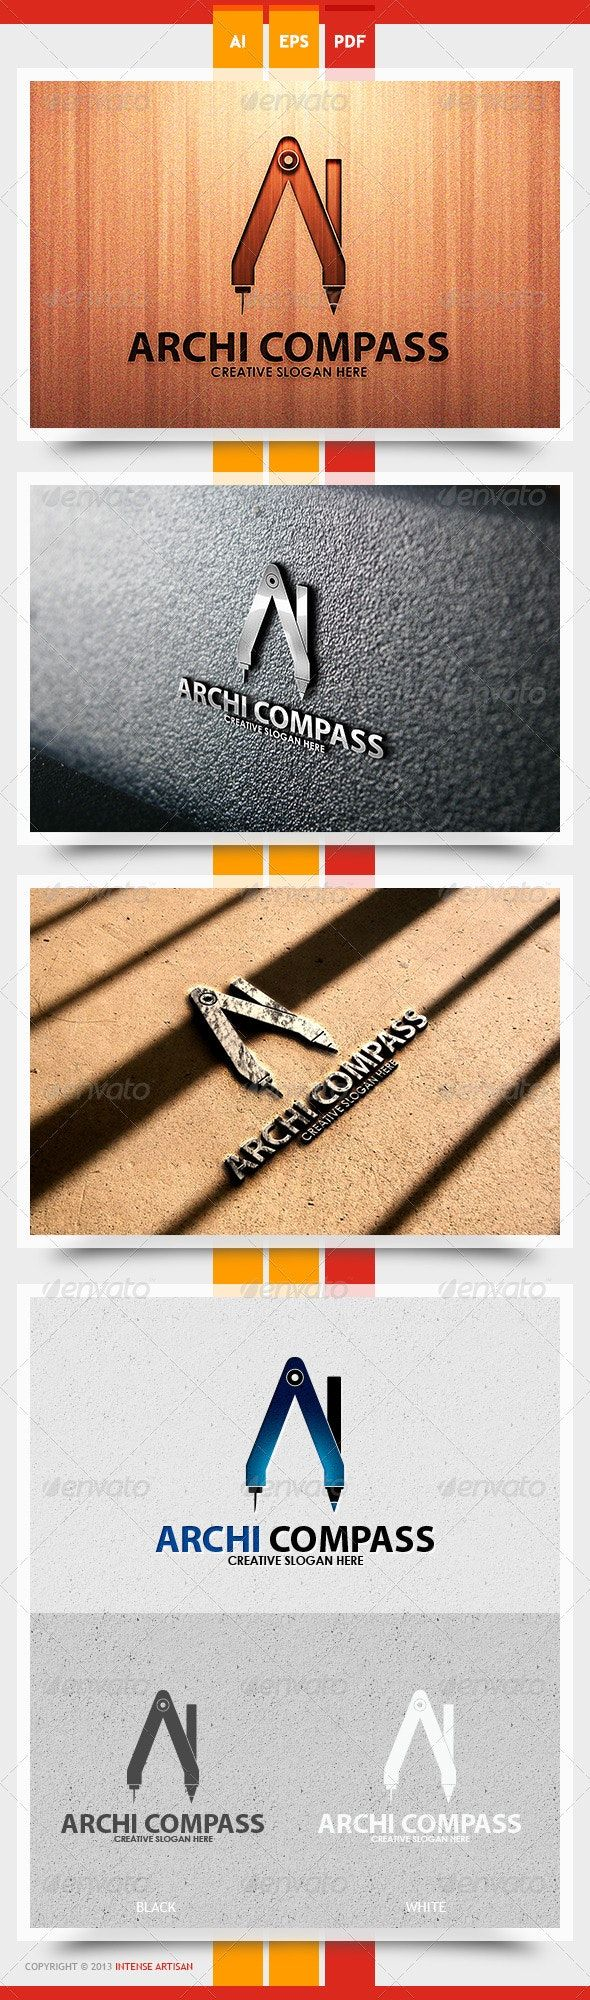 Archi Compass Logo Template Logo templates, Eye logo